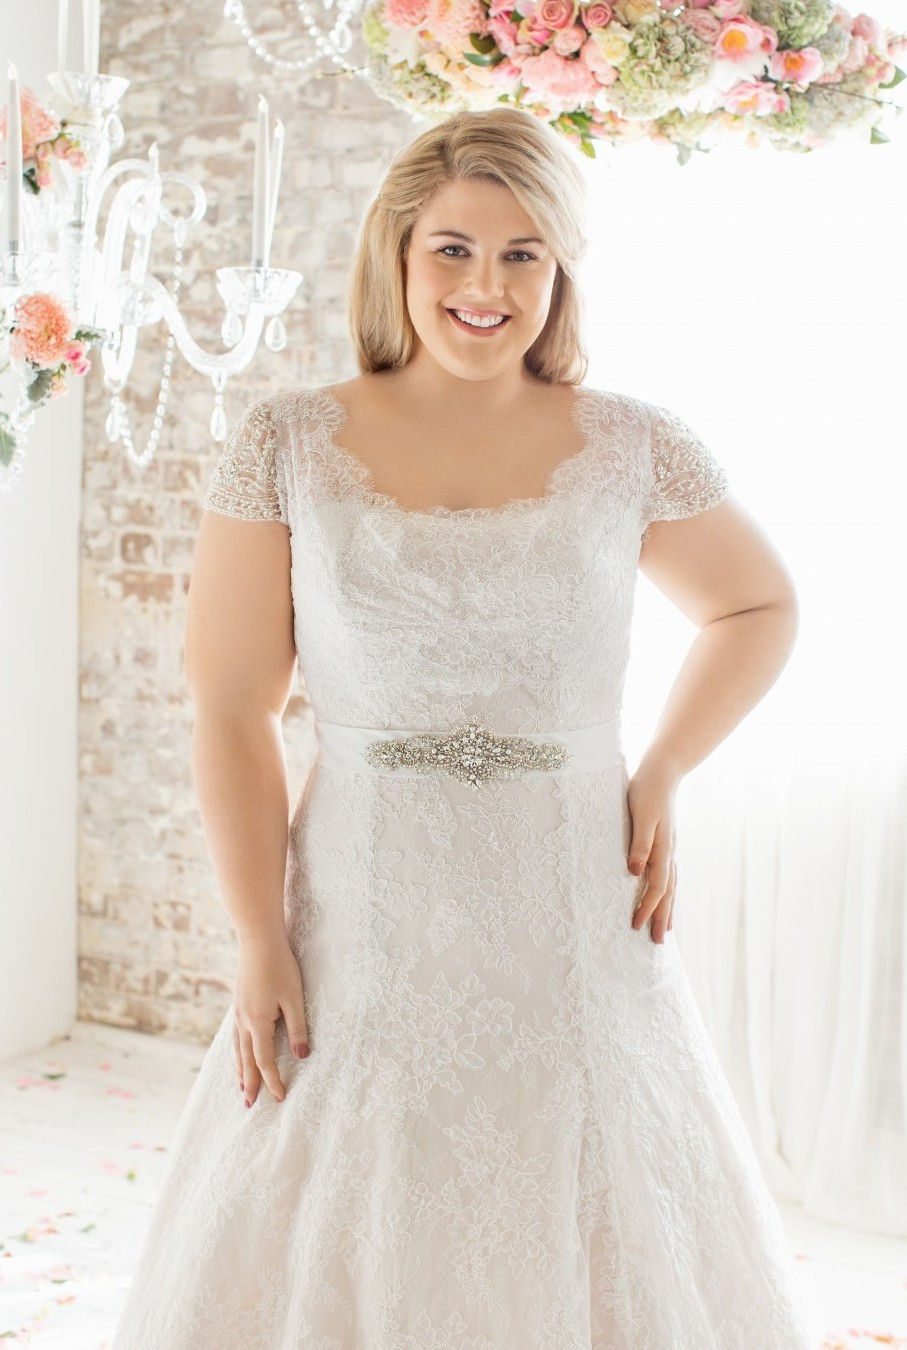 Sydney plus size wedding dresses - Photo Credit Roz La Kelin